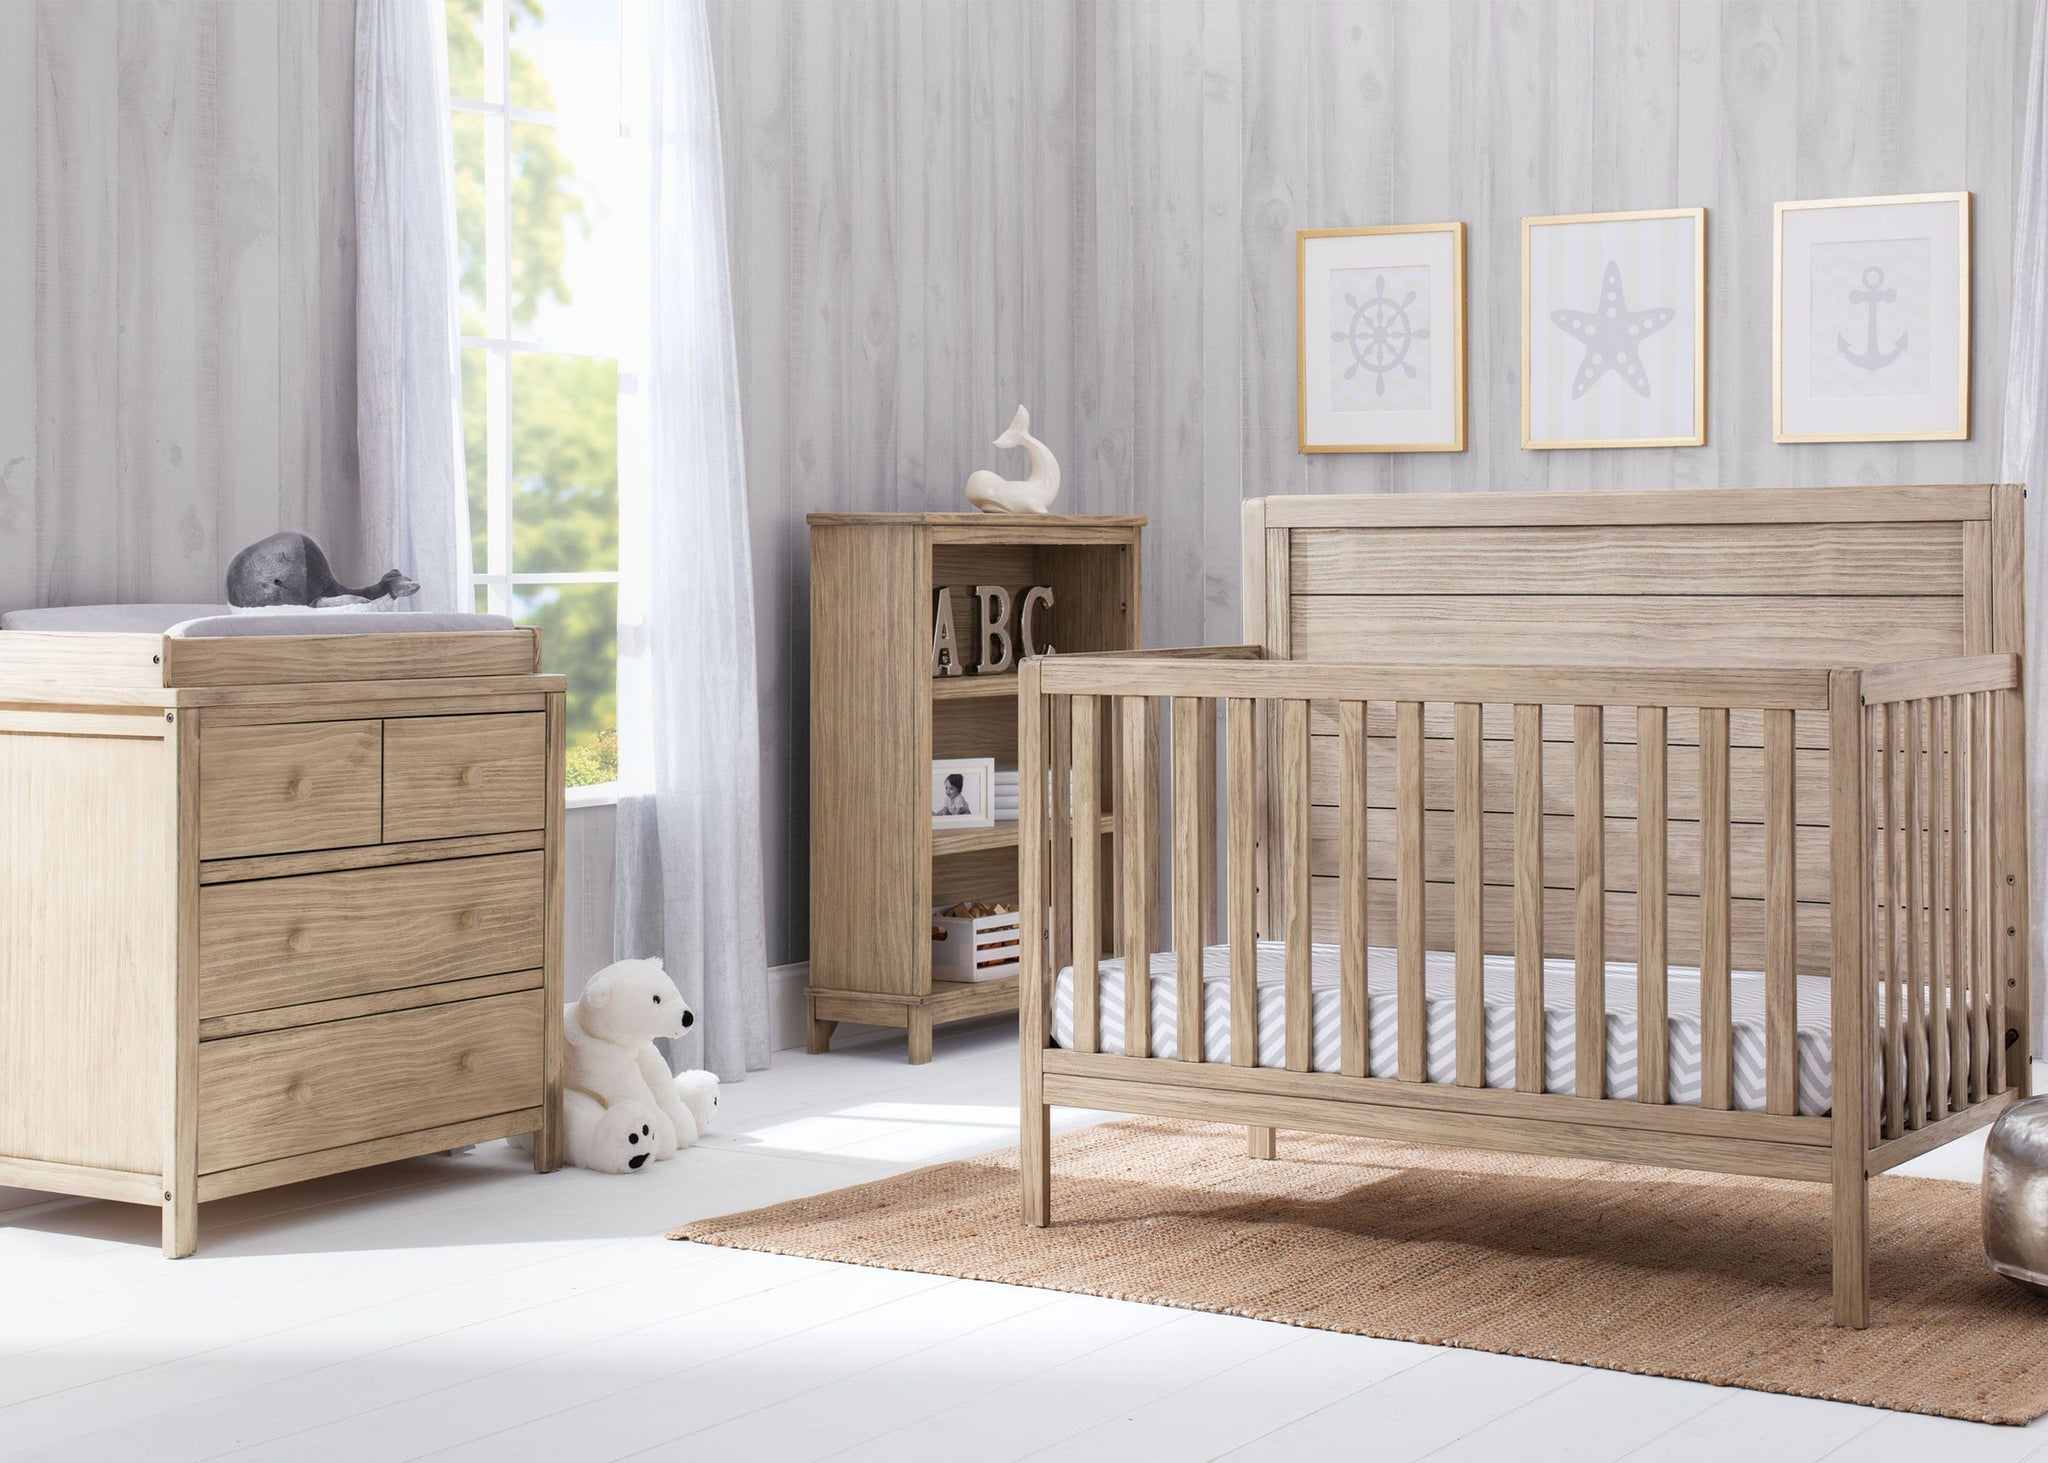 Serta Rustic Driftwood (112) Cambridge 4-in-1 Converible Crib, room View b3b